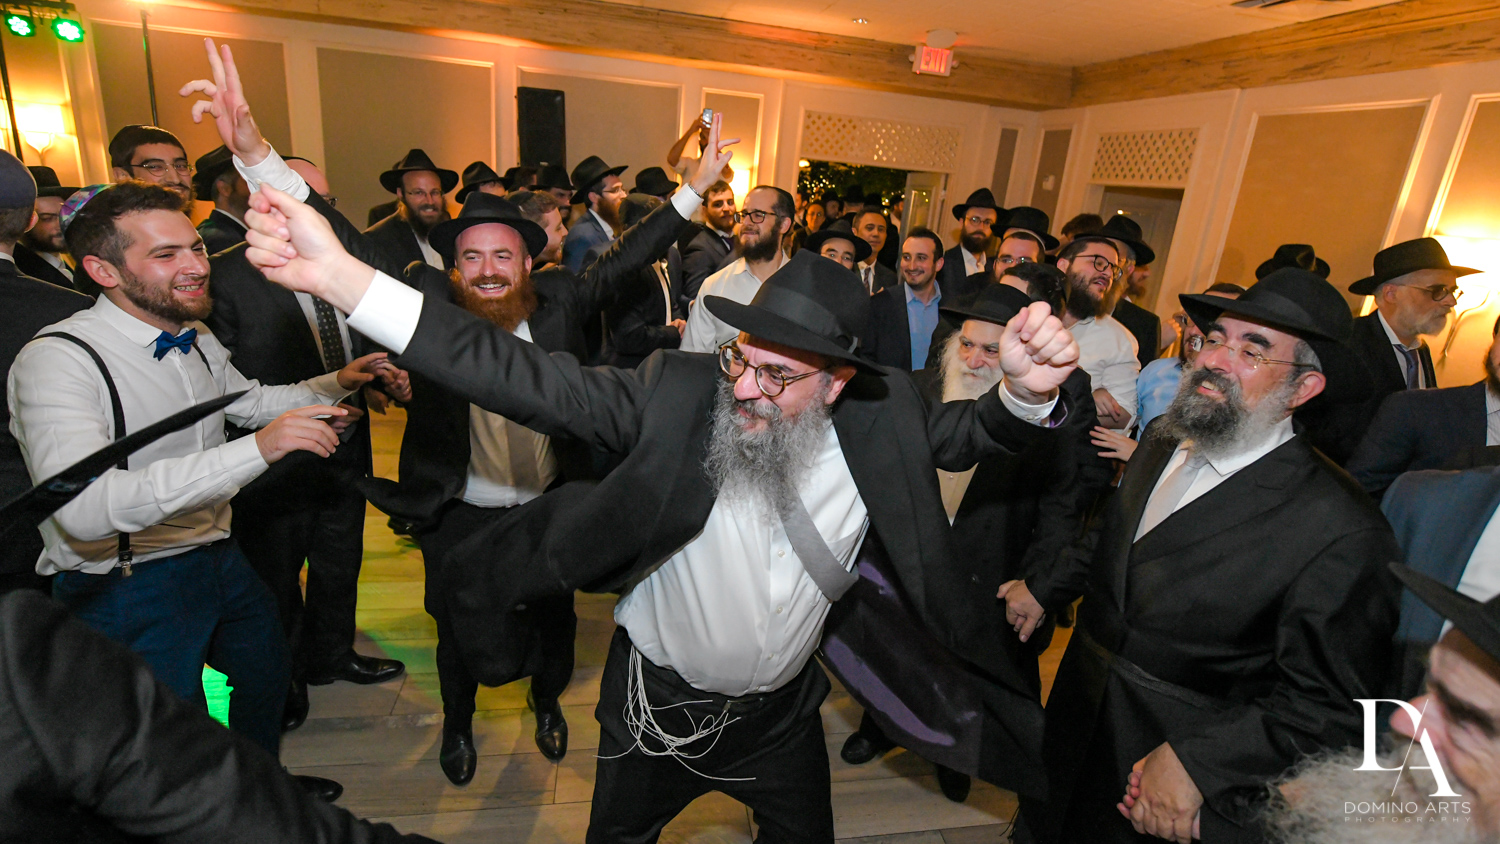 men dancing at Hasidic Jewish Wedding at The Addison in Boca Raton by Domino Arts Photography